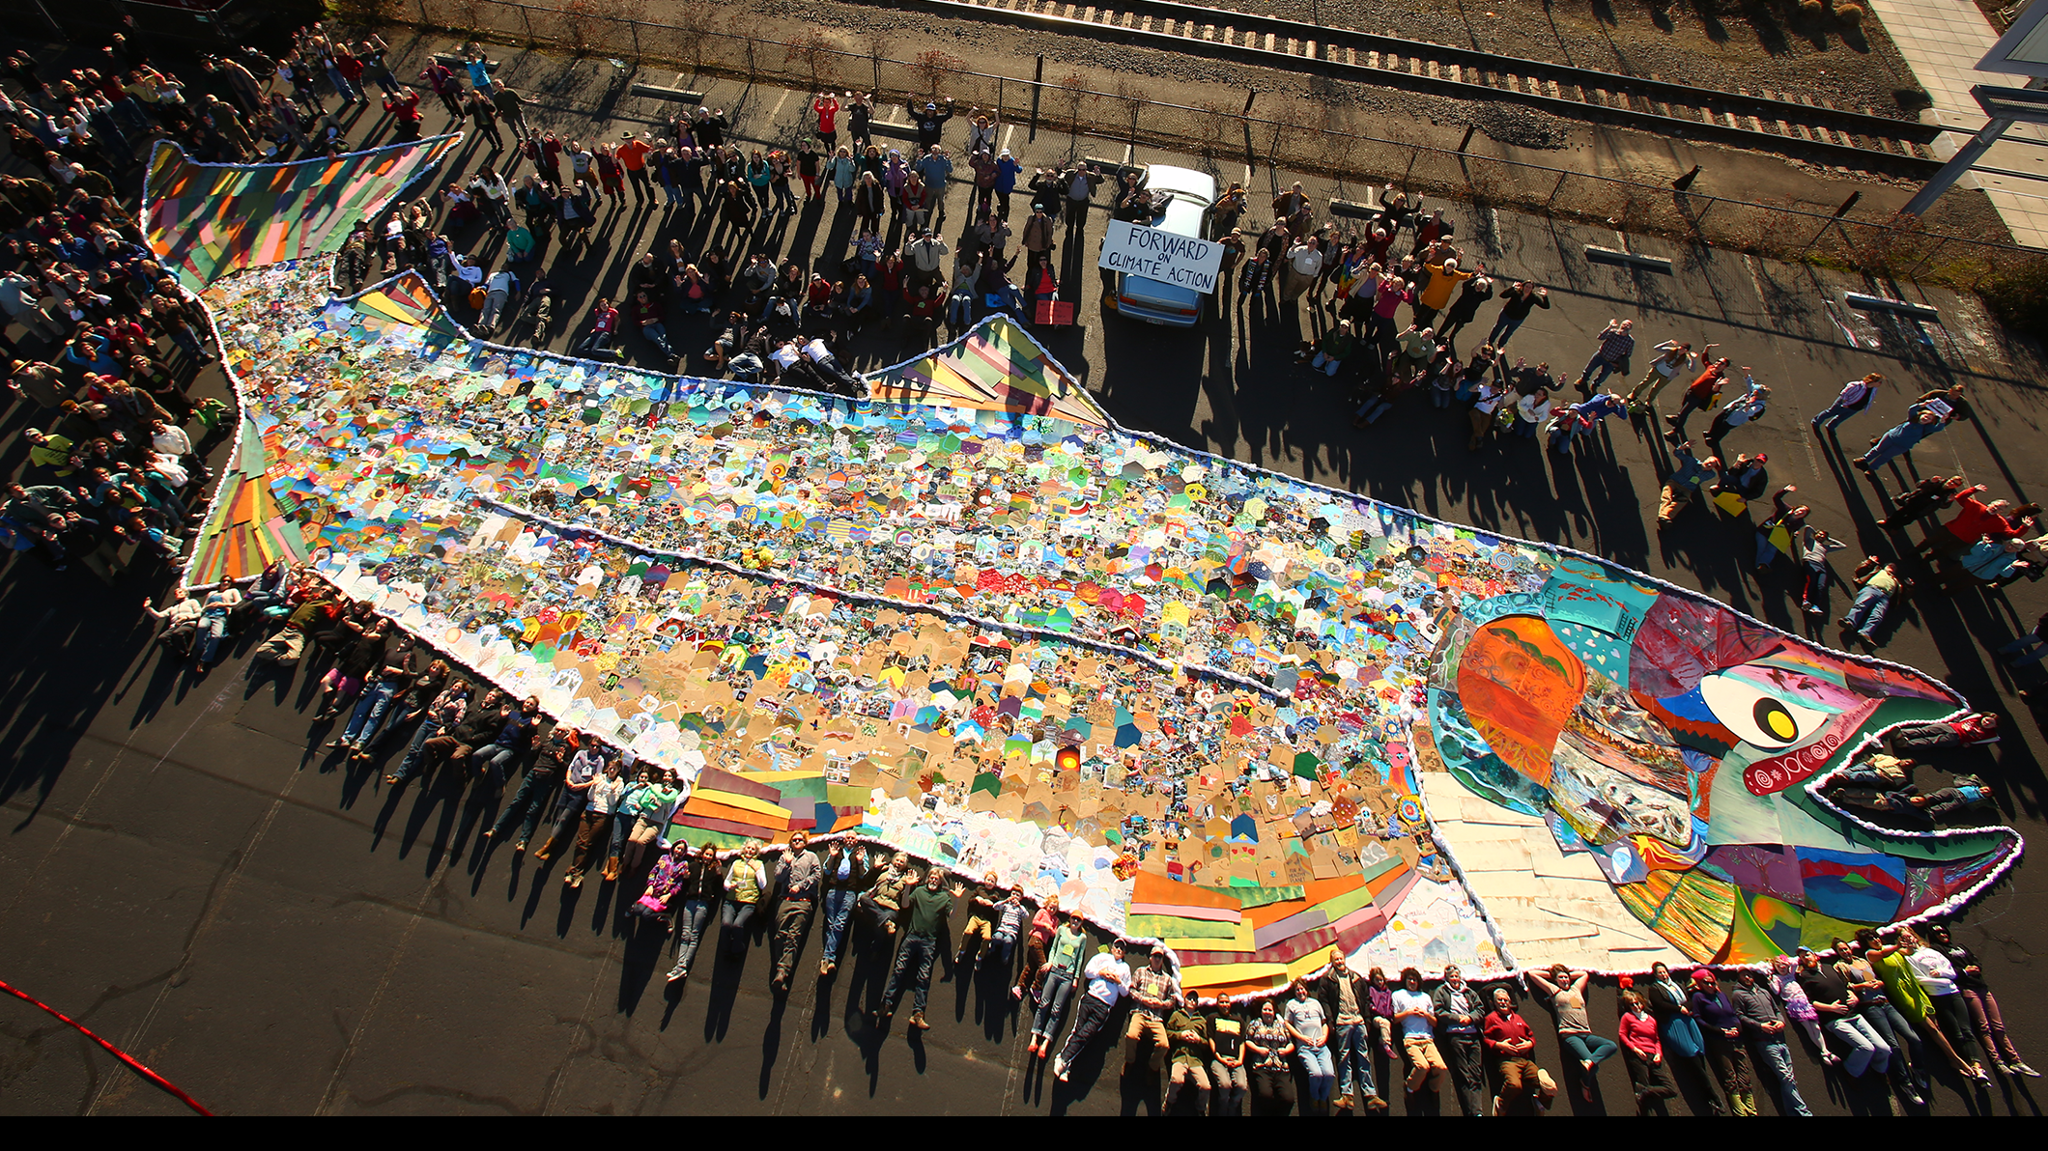 Our Climate's salmon mosaic